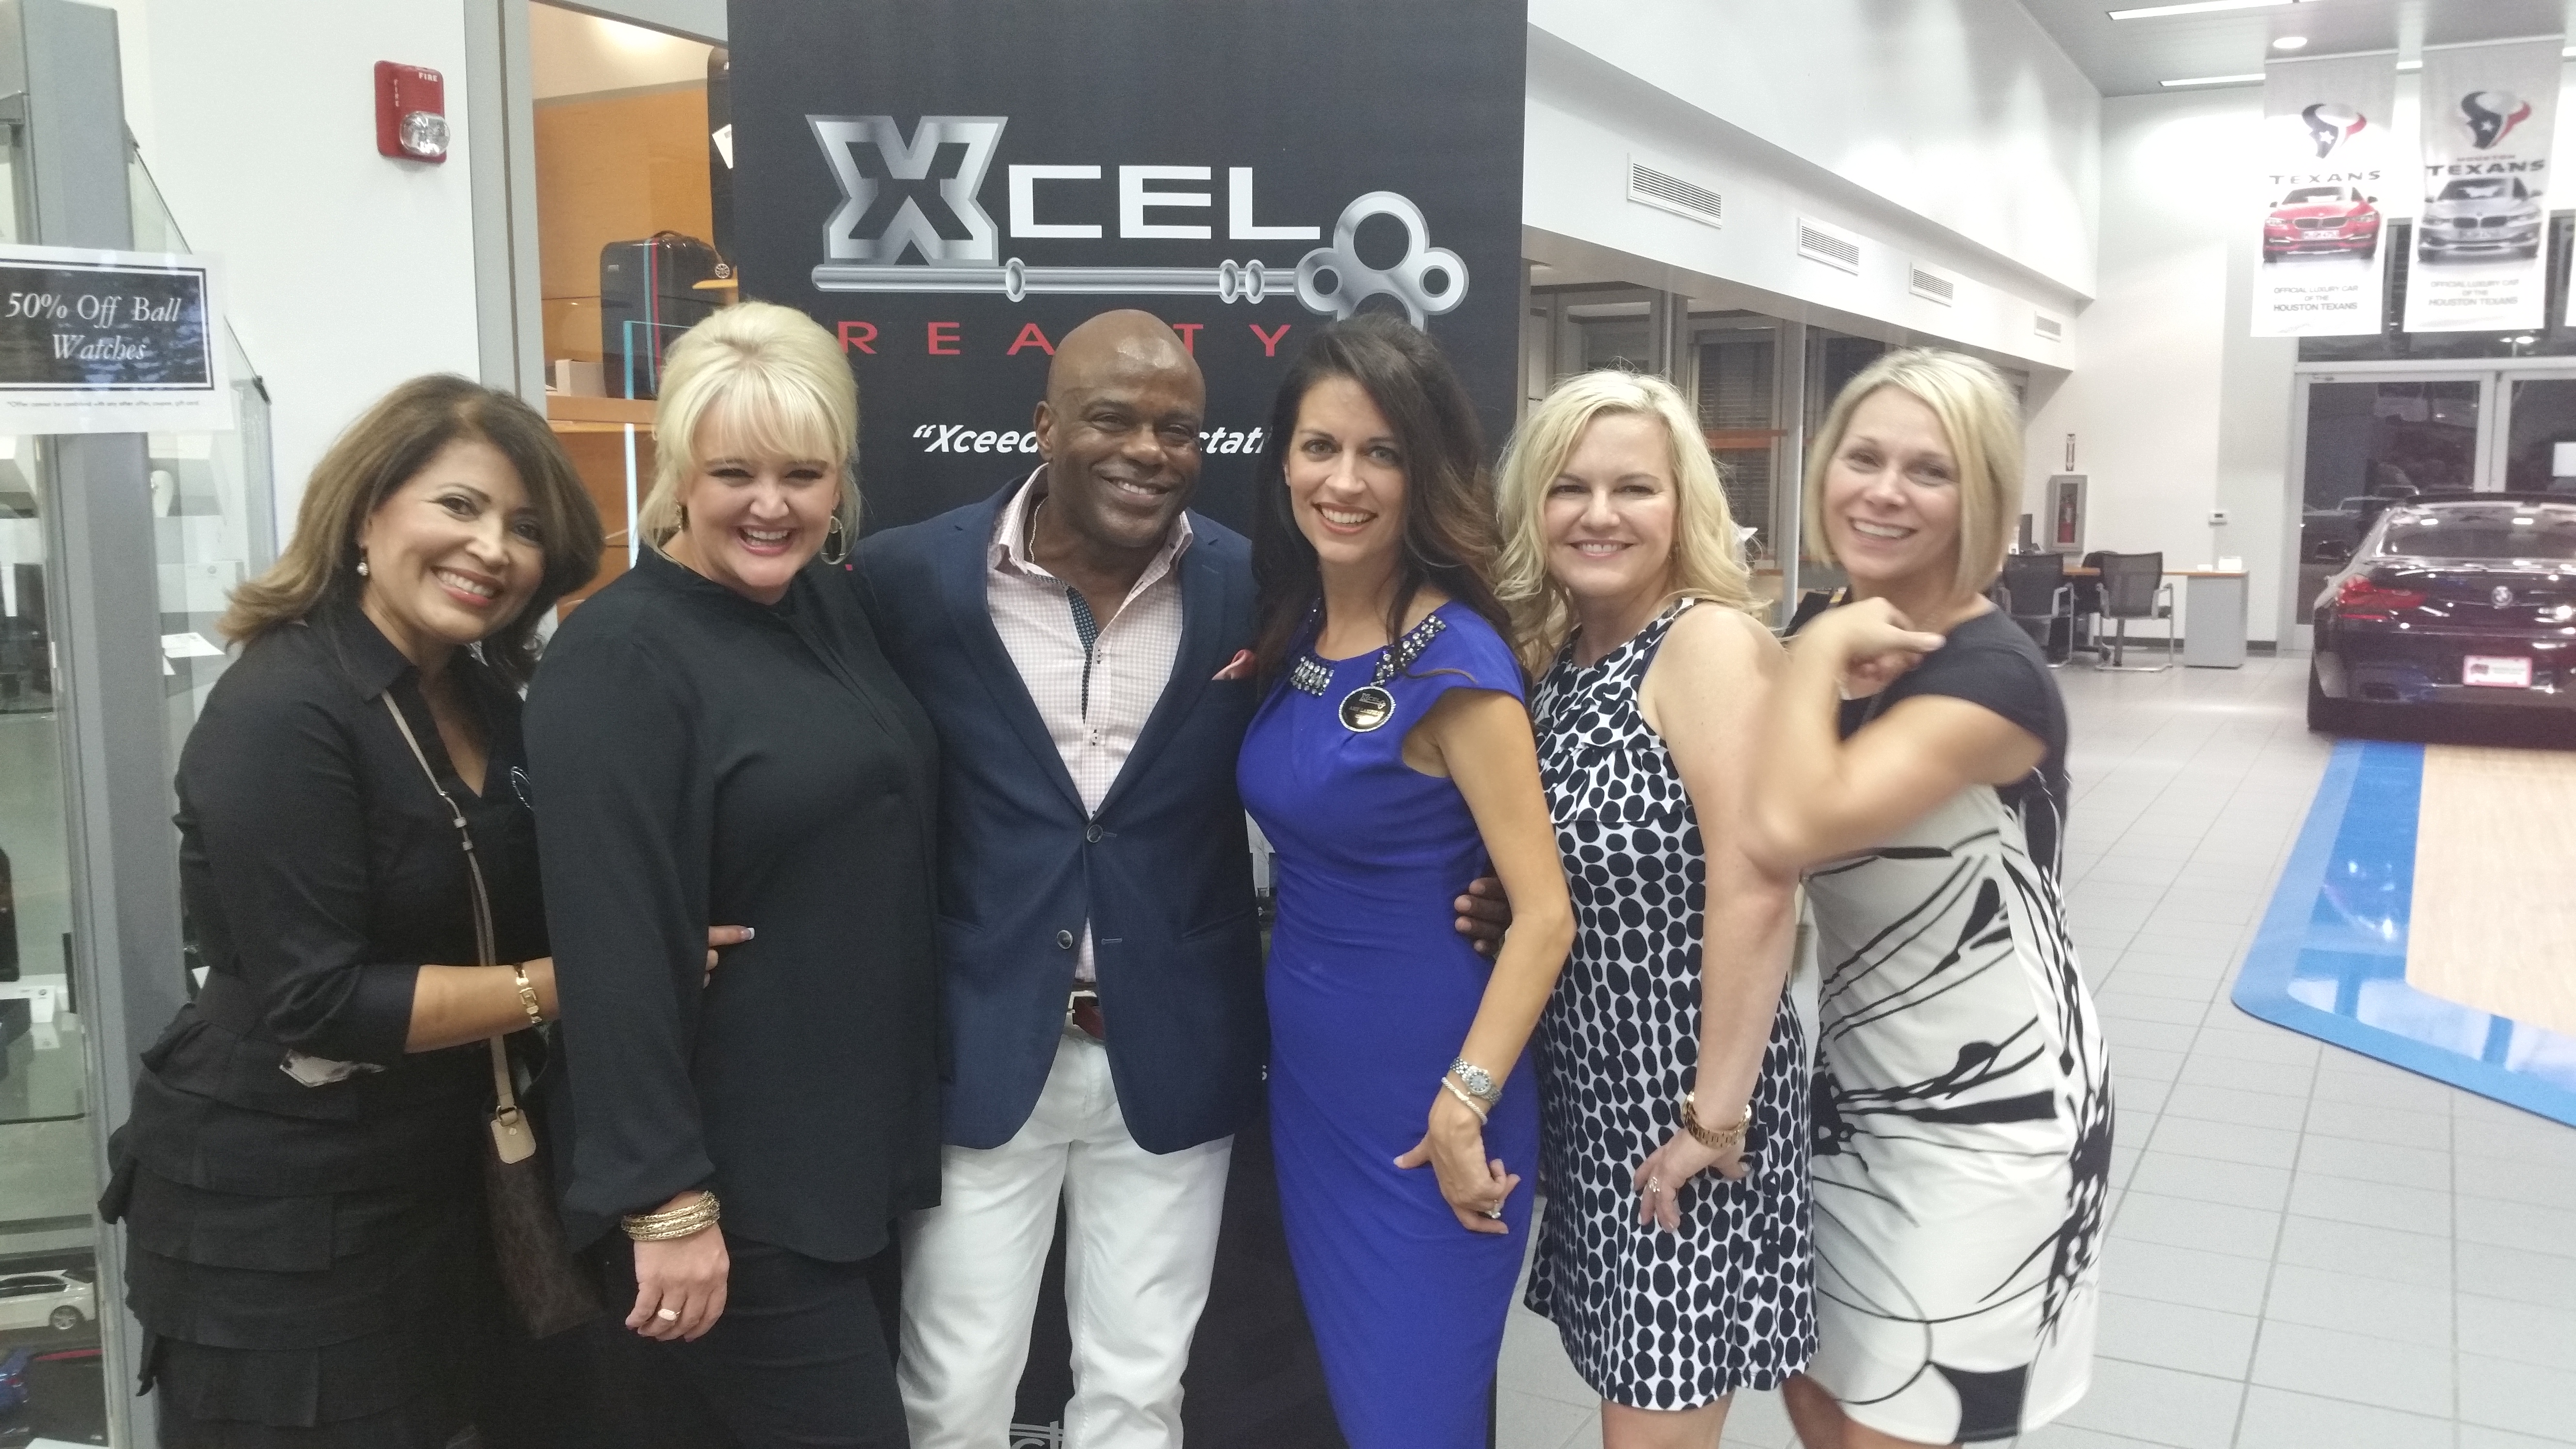 Xcel Realty Fundraiser for Casa